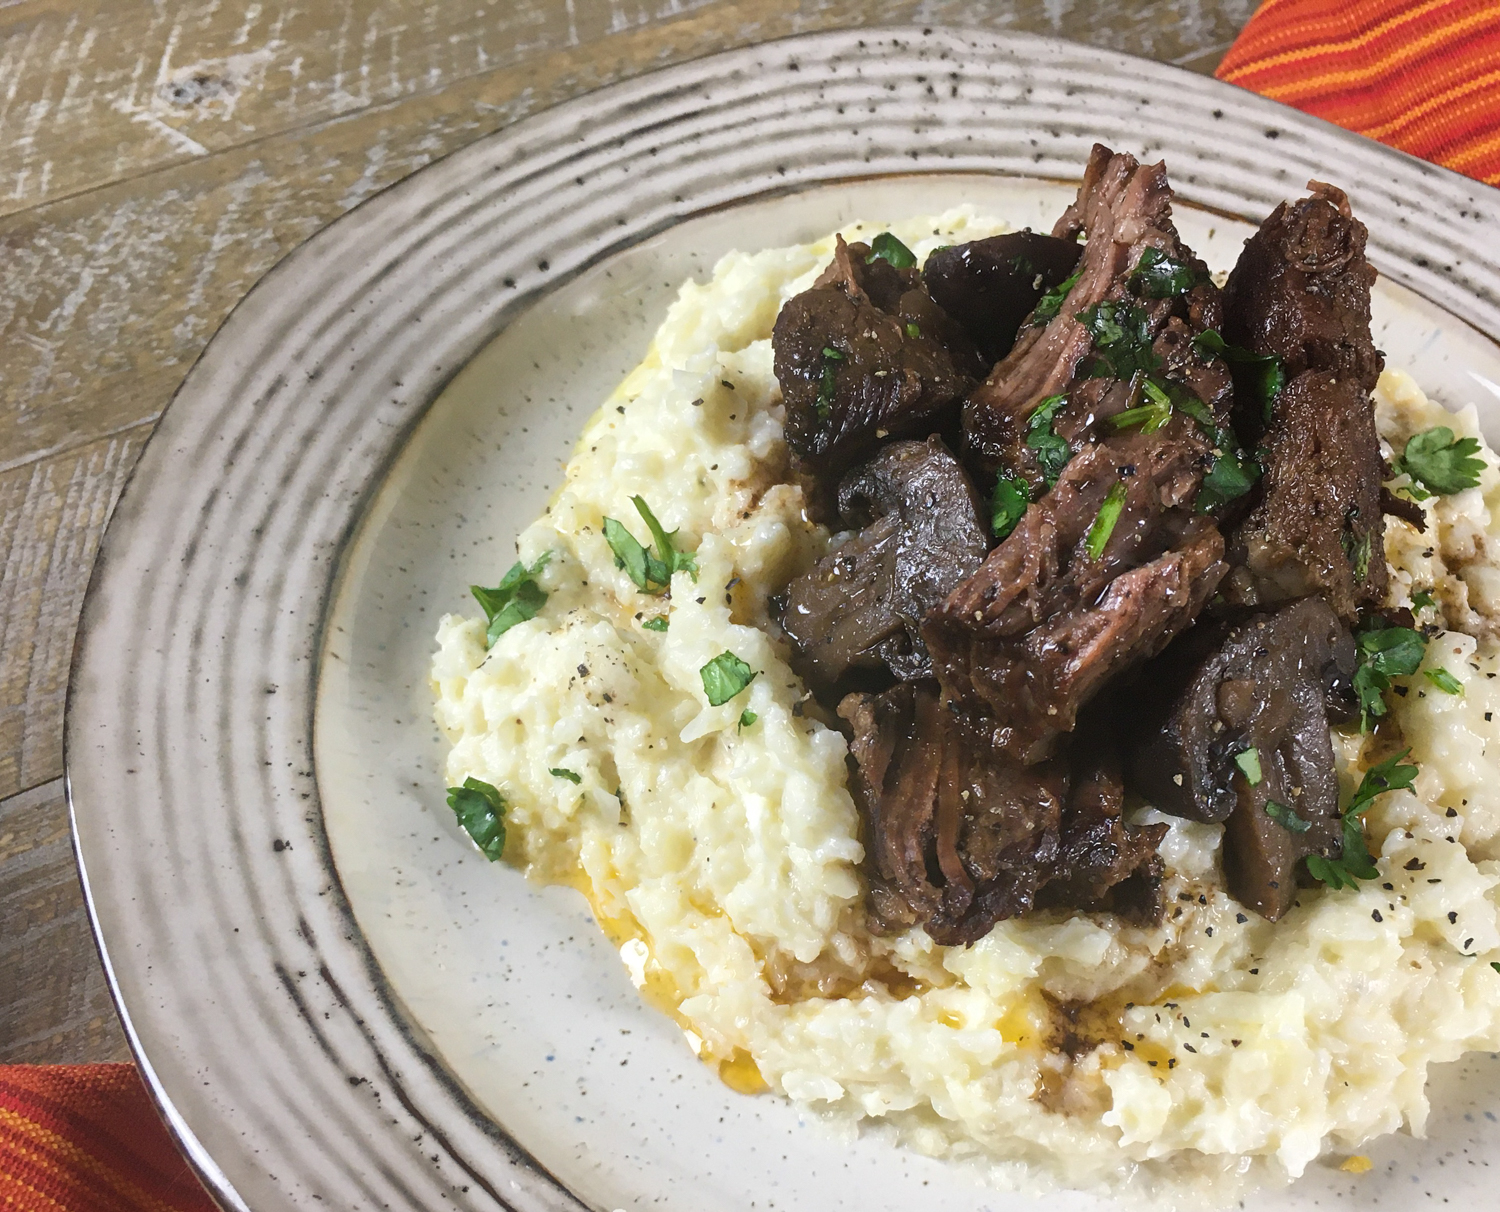 KETO POT ROAST AND PORTOBELLOS